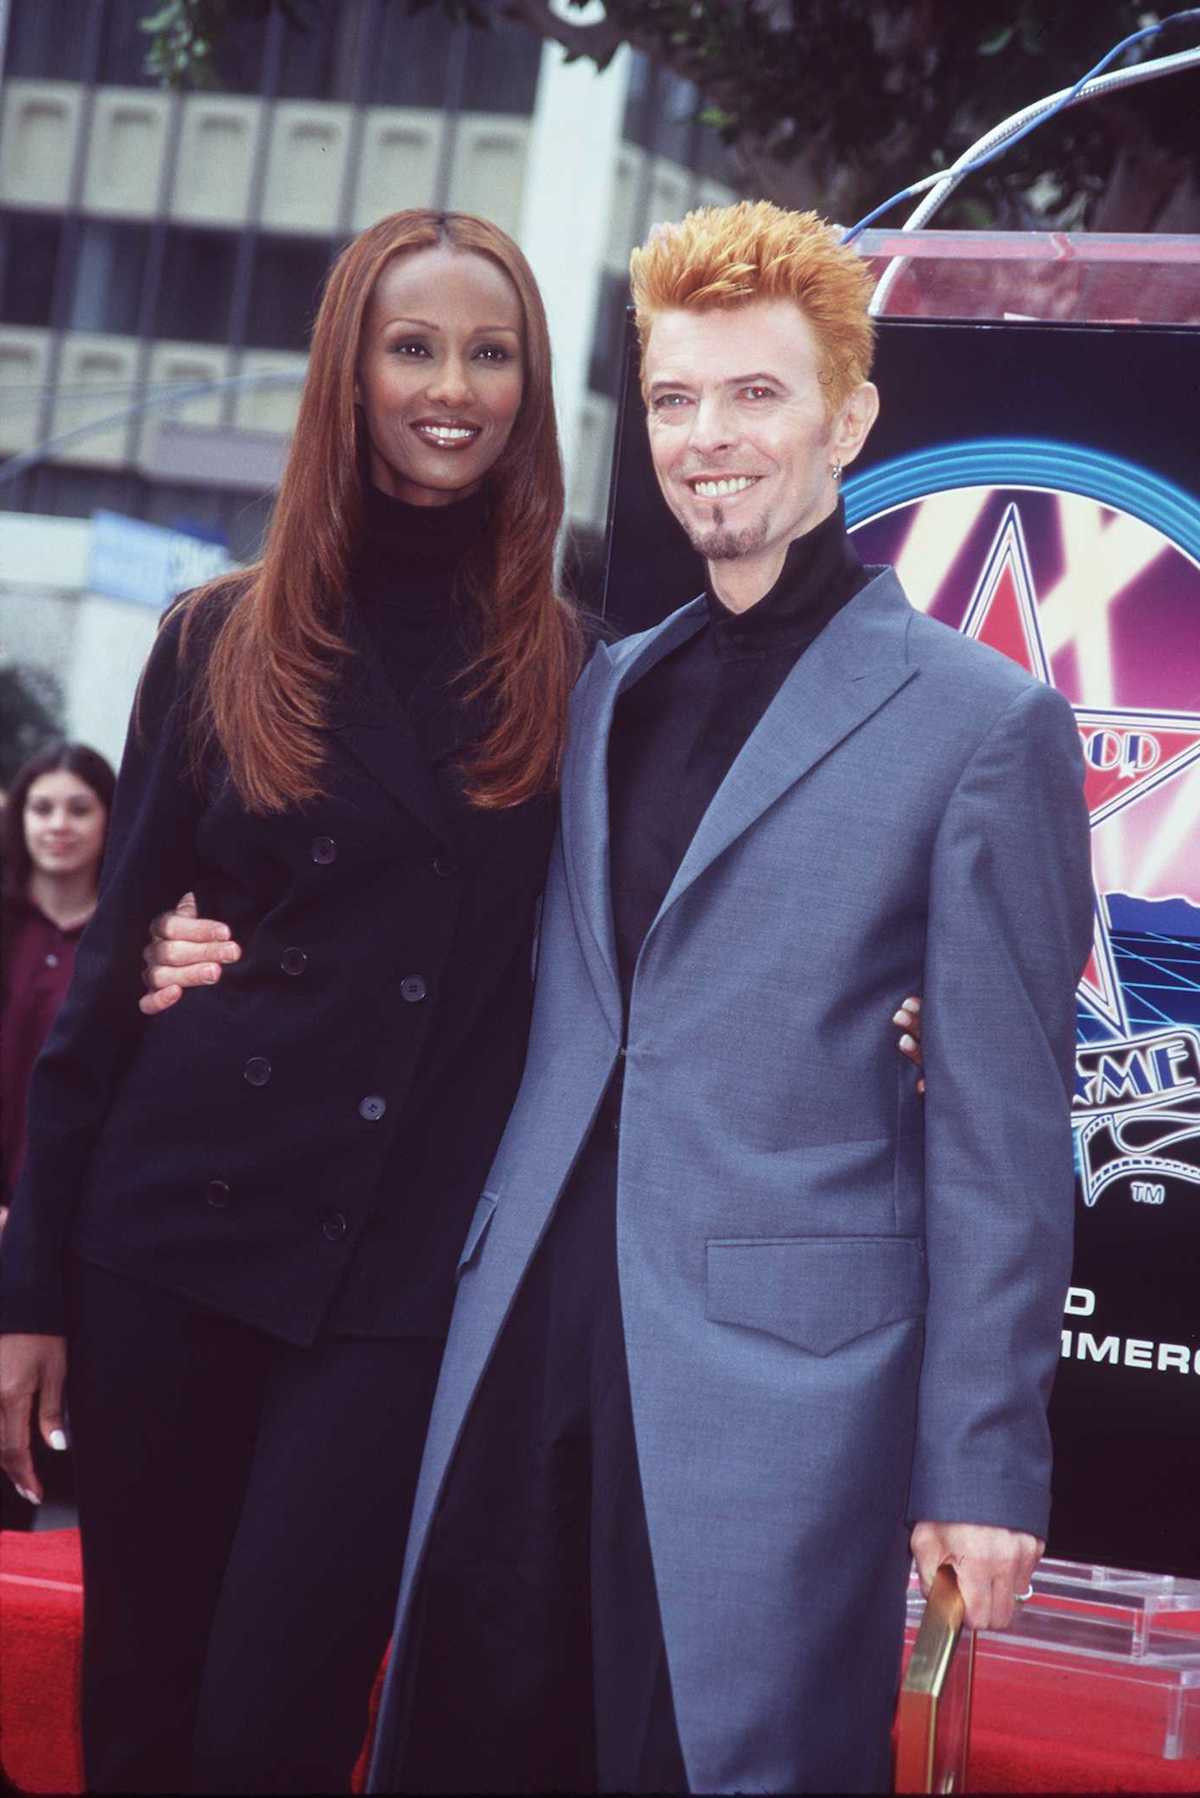 376076 01: 2/12/97 Hollywood, Ca David Bowie with wife Iman Receives his star on the Hollywood Walk of Fame. (Photo by Online USA, Inc.)